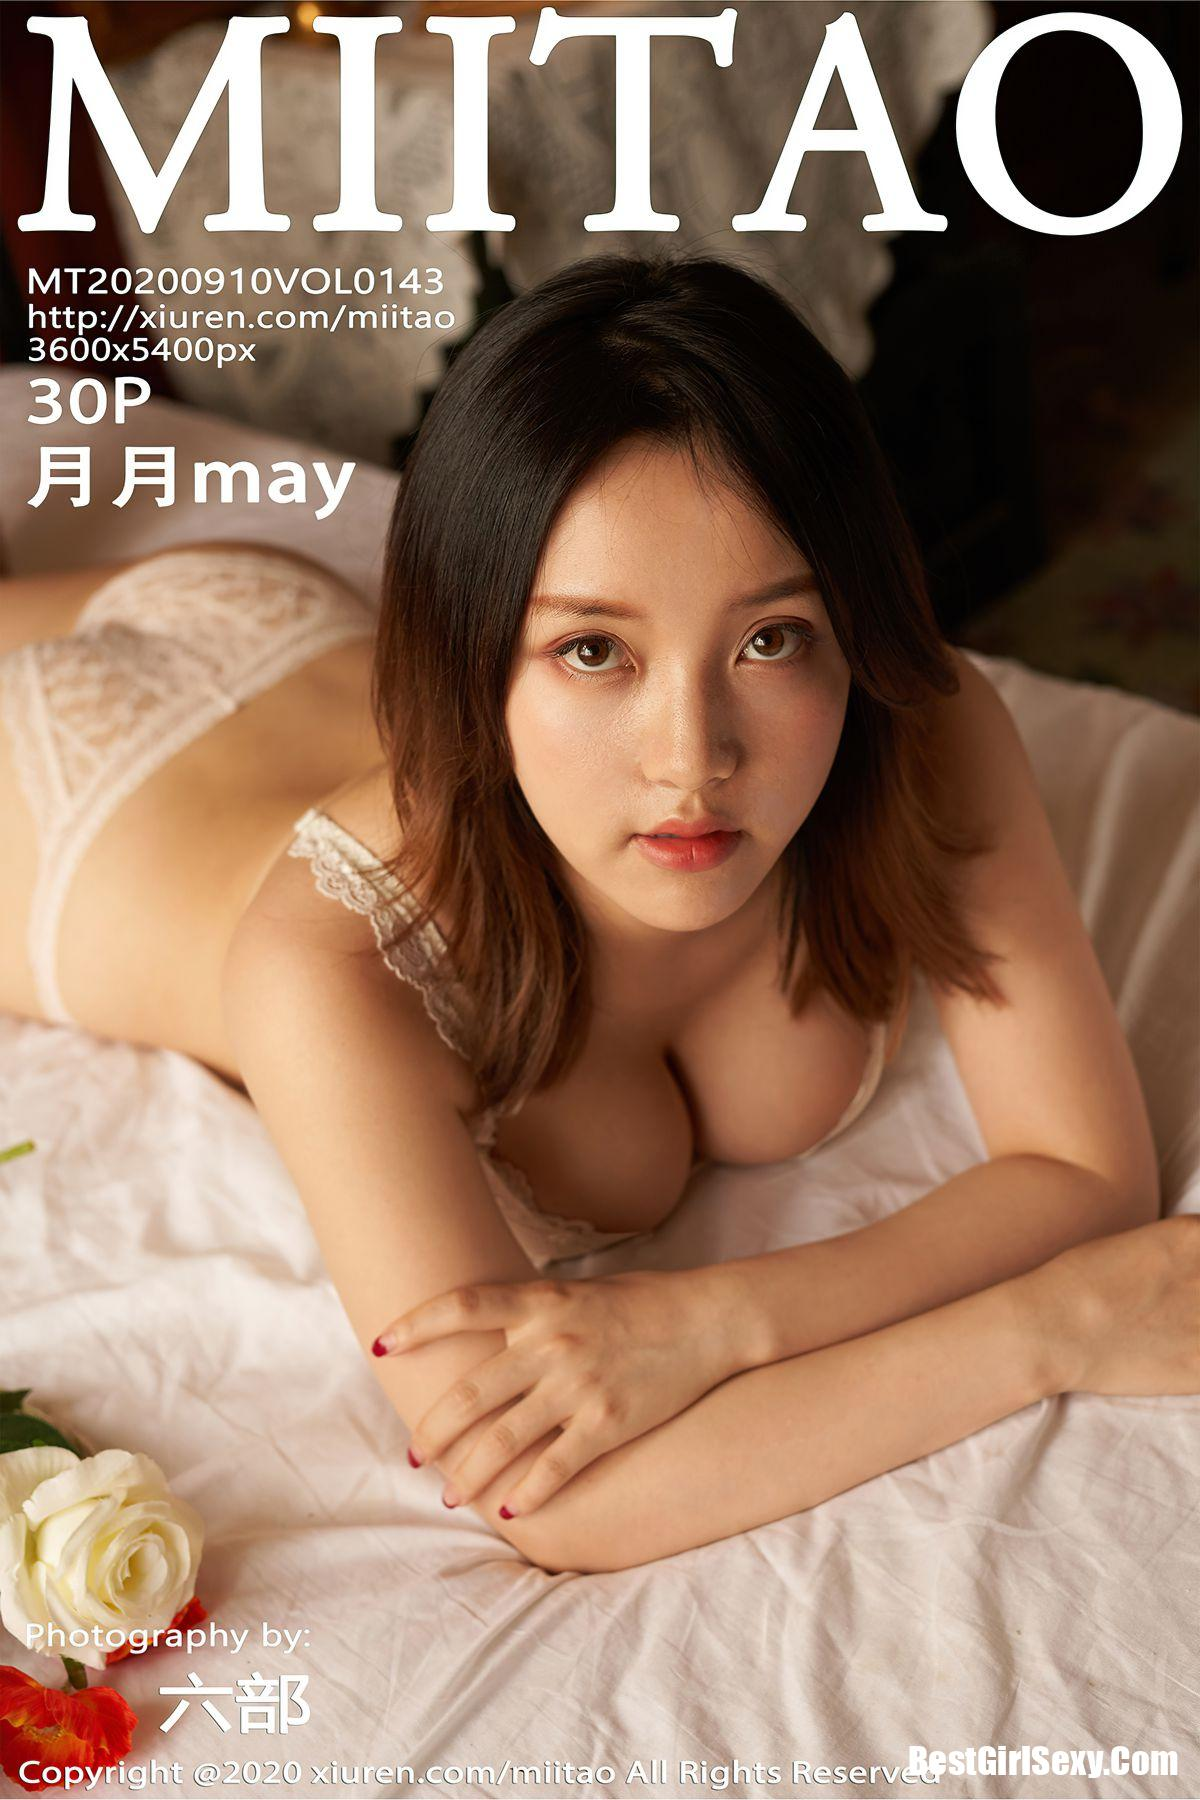 MiiTao Vol.143 Yue Yue May